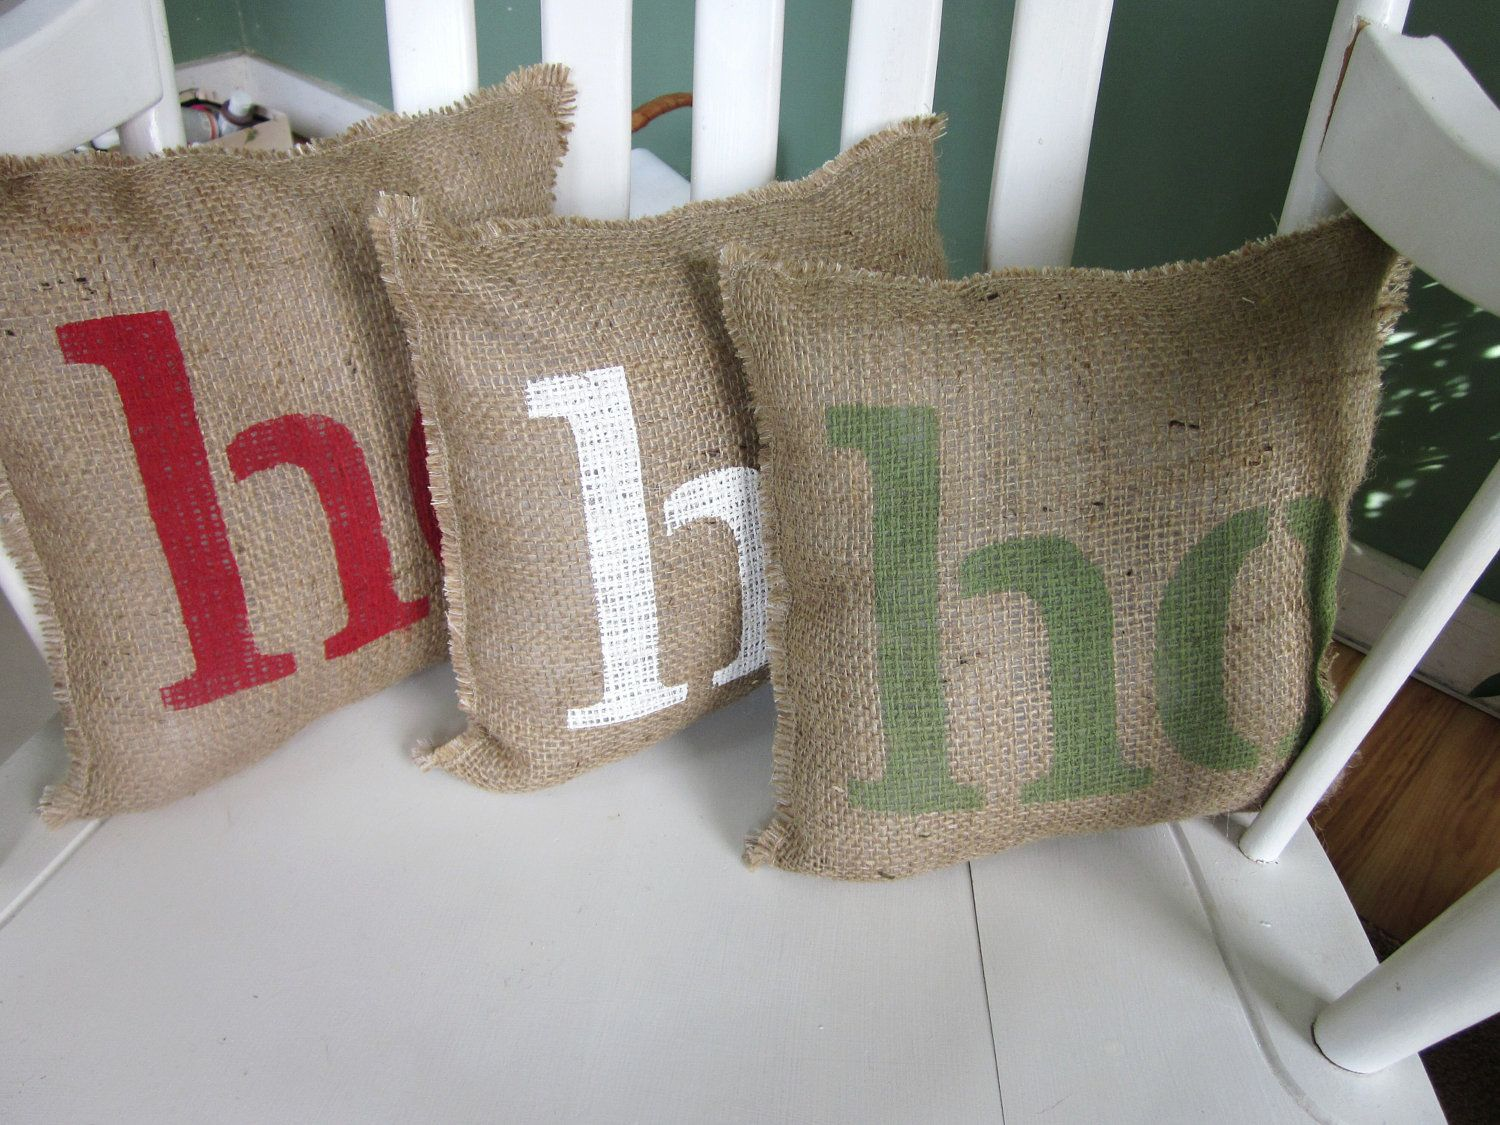 Shabby Chic Christmas Pillows : Christmas pillows, holiday pillows, ho ho ho, santa, shabby chic, farmhouse decor burlap pillow ...